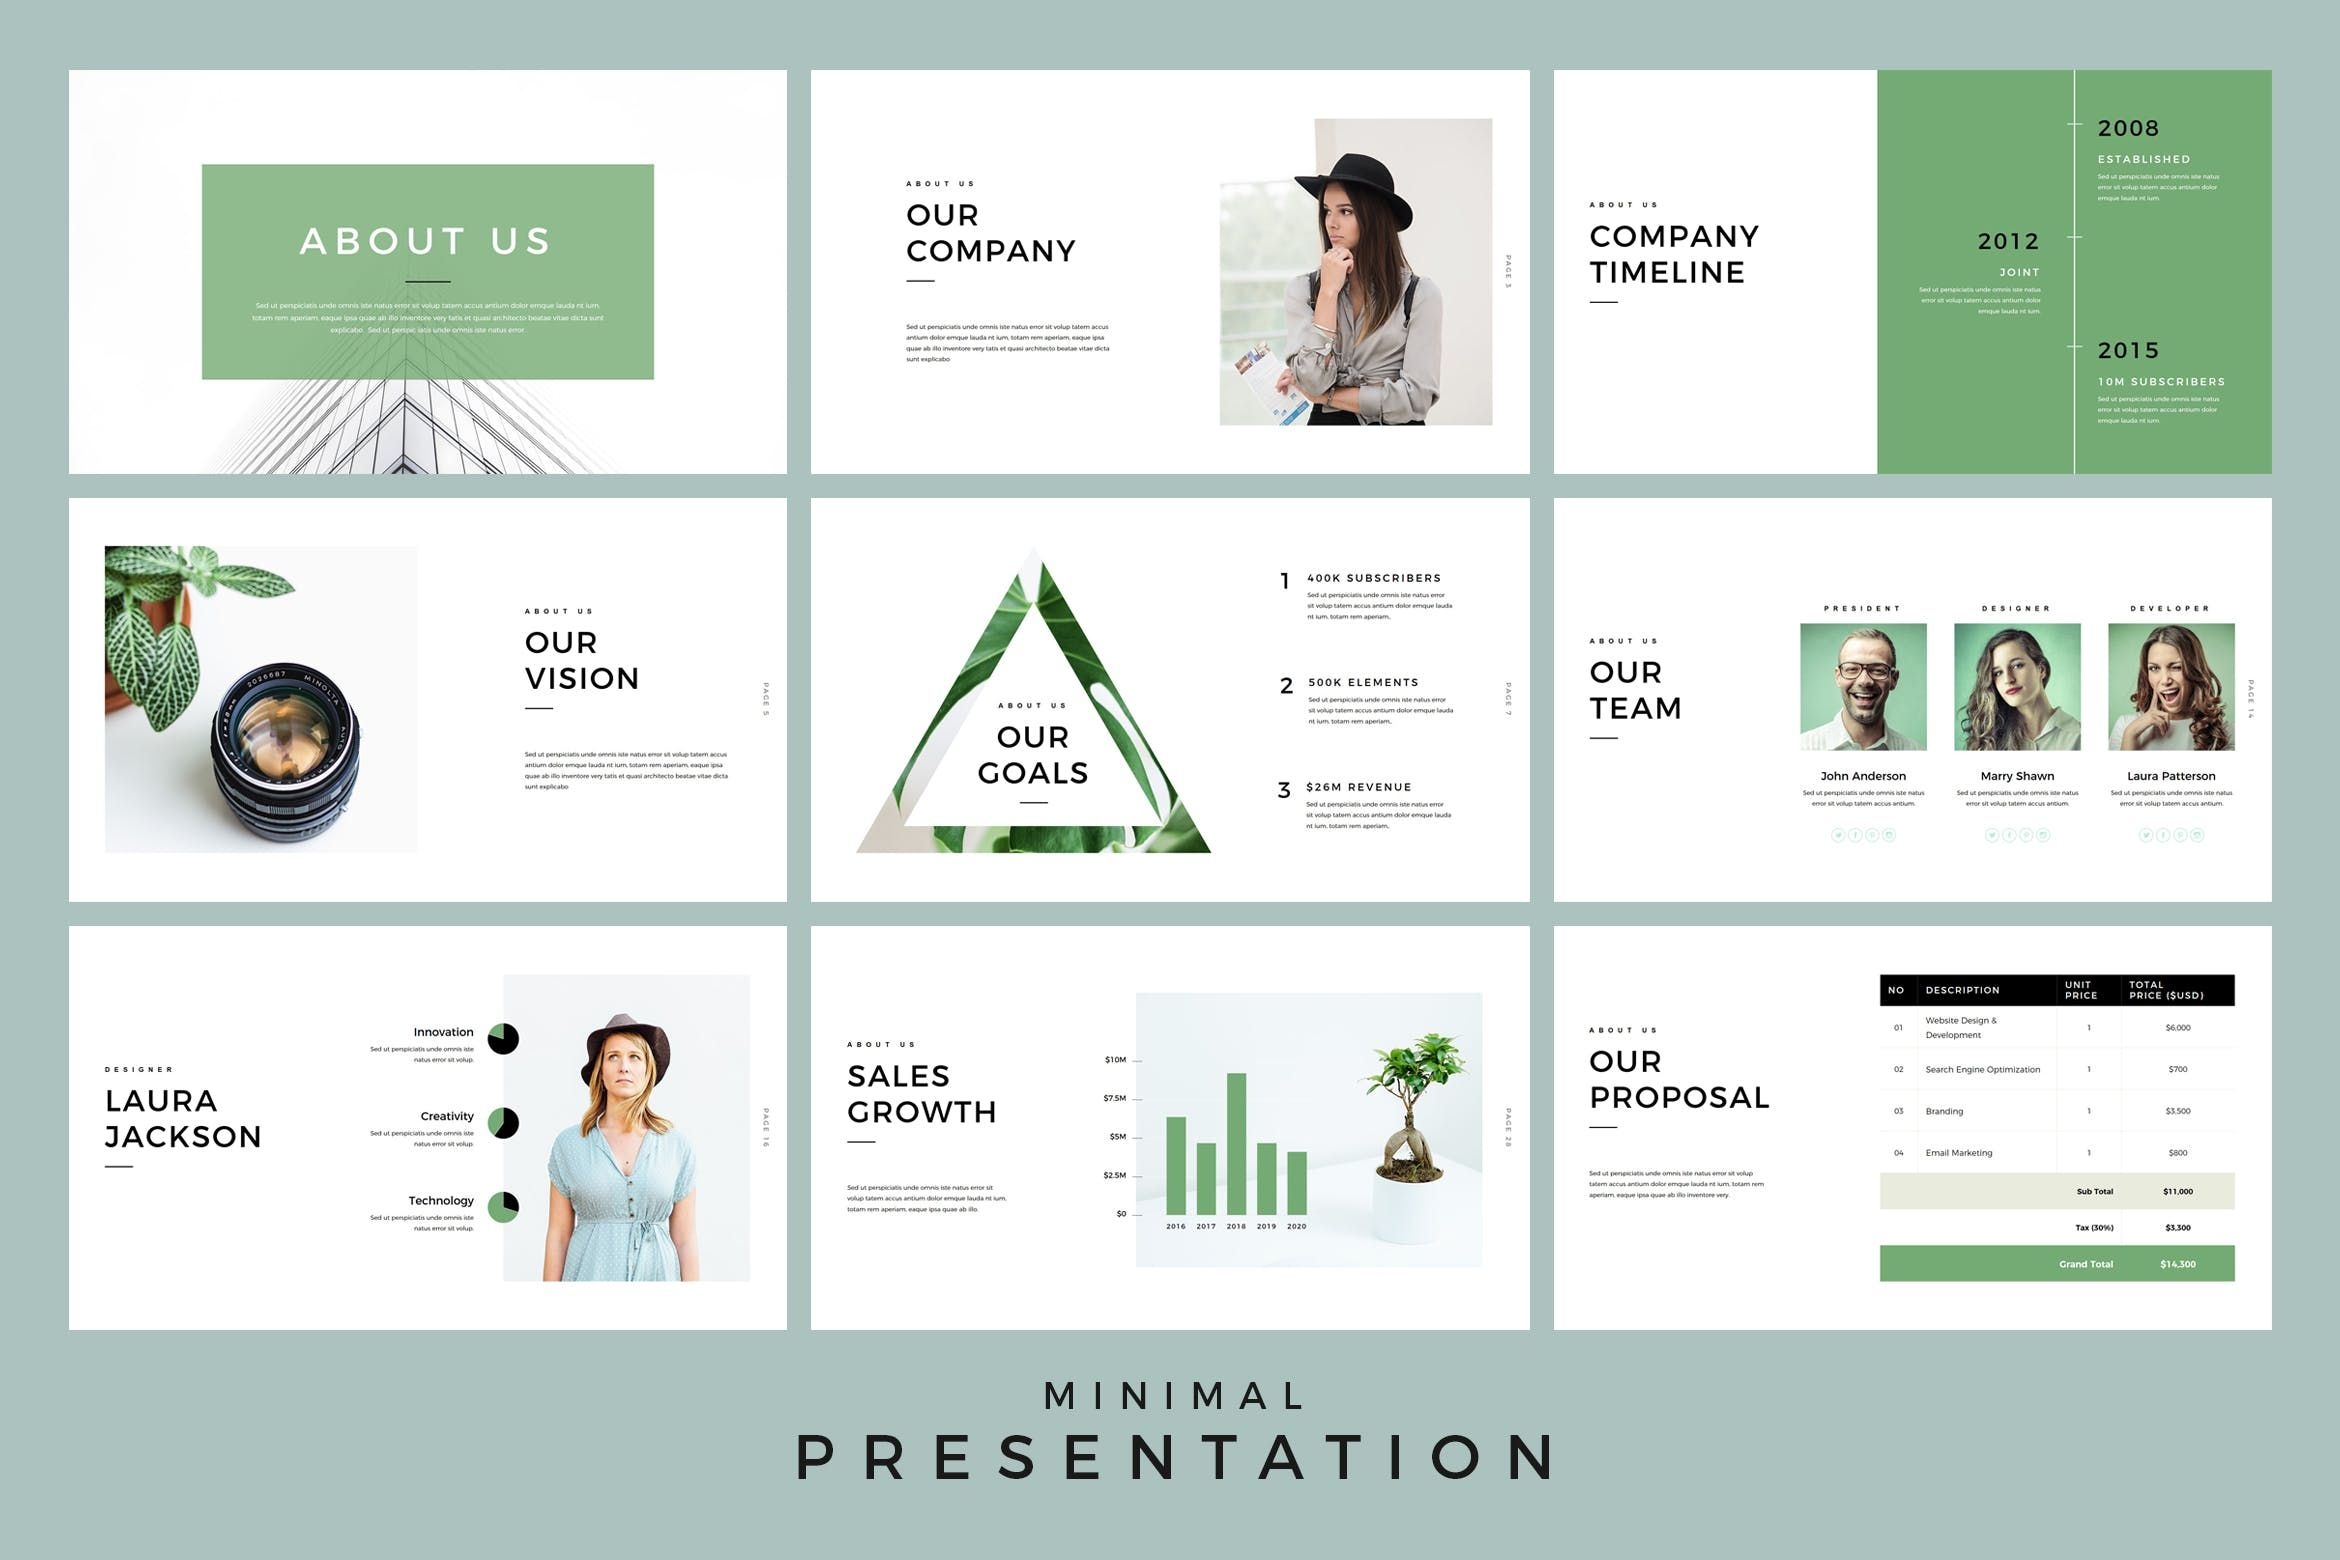 Minimal Presentation Powerpoint Template By Jafardesigns On Powerpoint Templates Keynote Template Business Powerpoint Templates